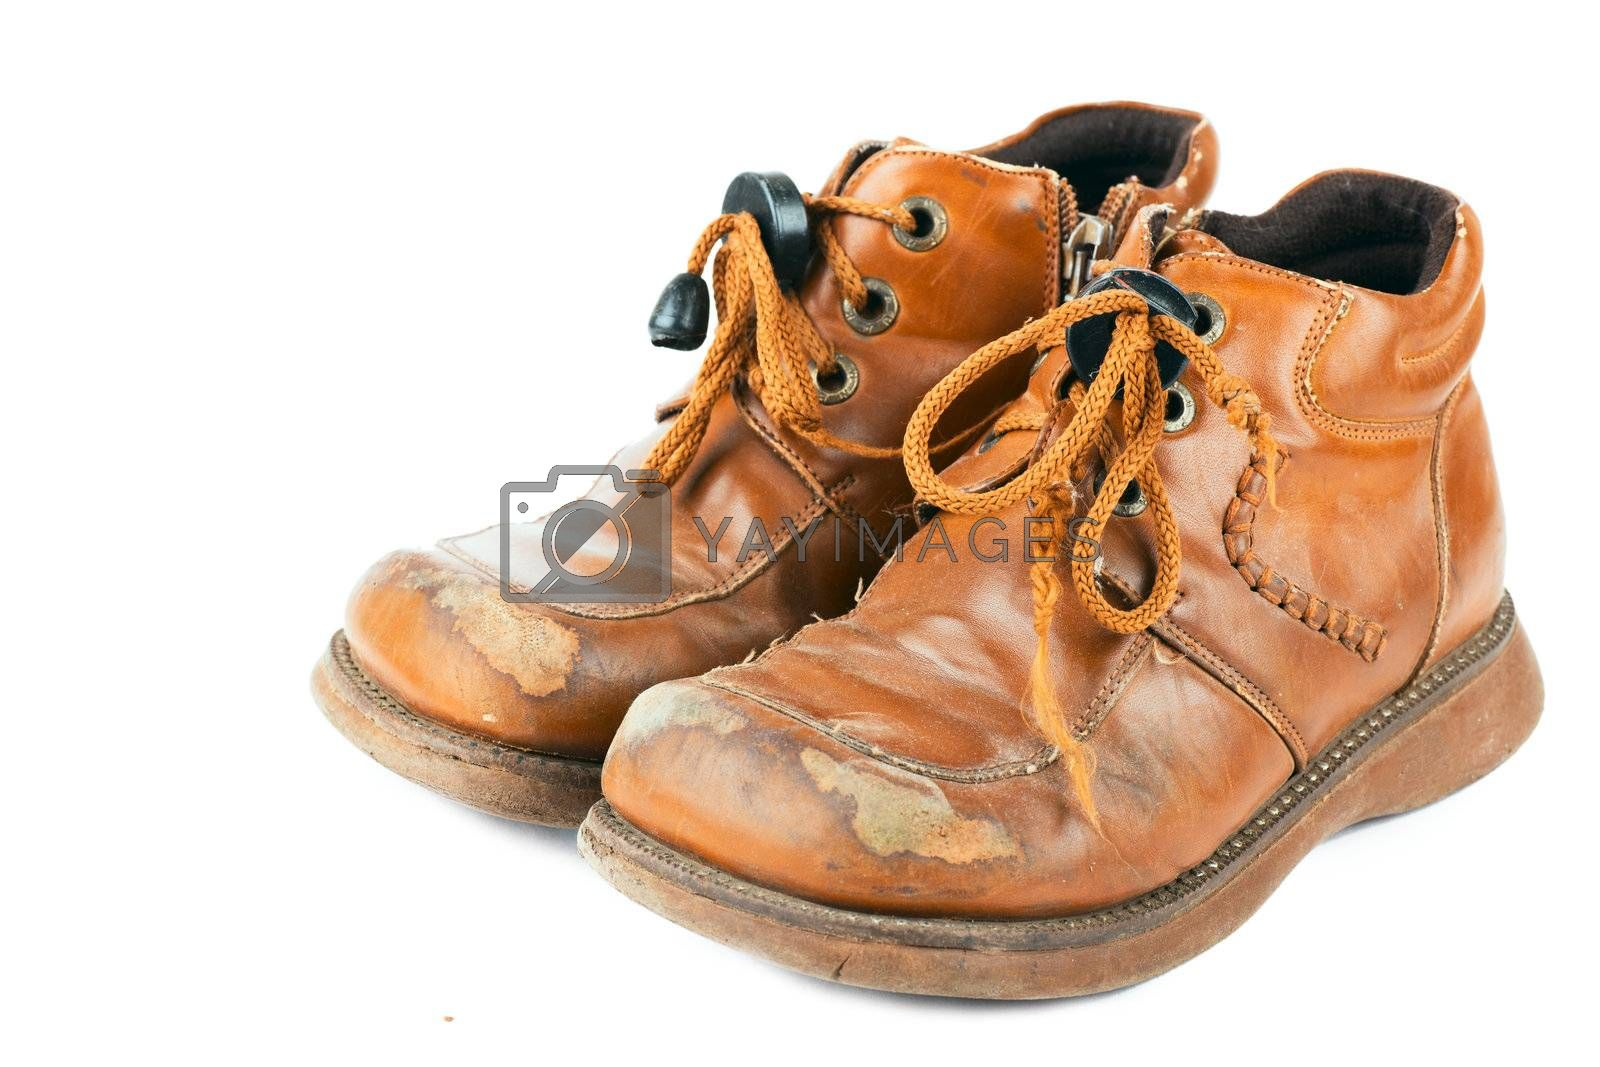 Royalty free image of Old shoes by AGorohov